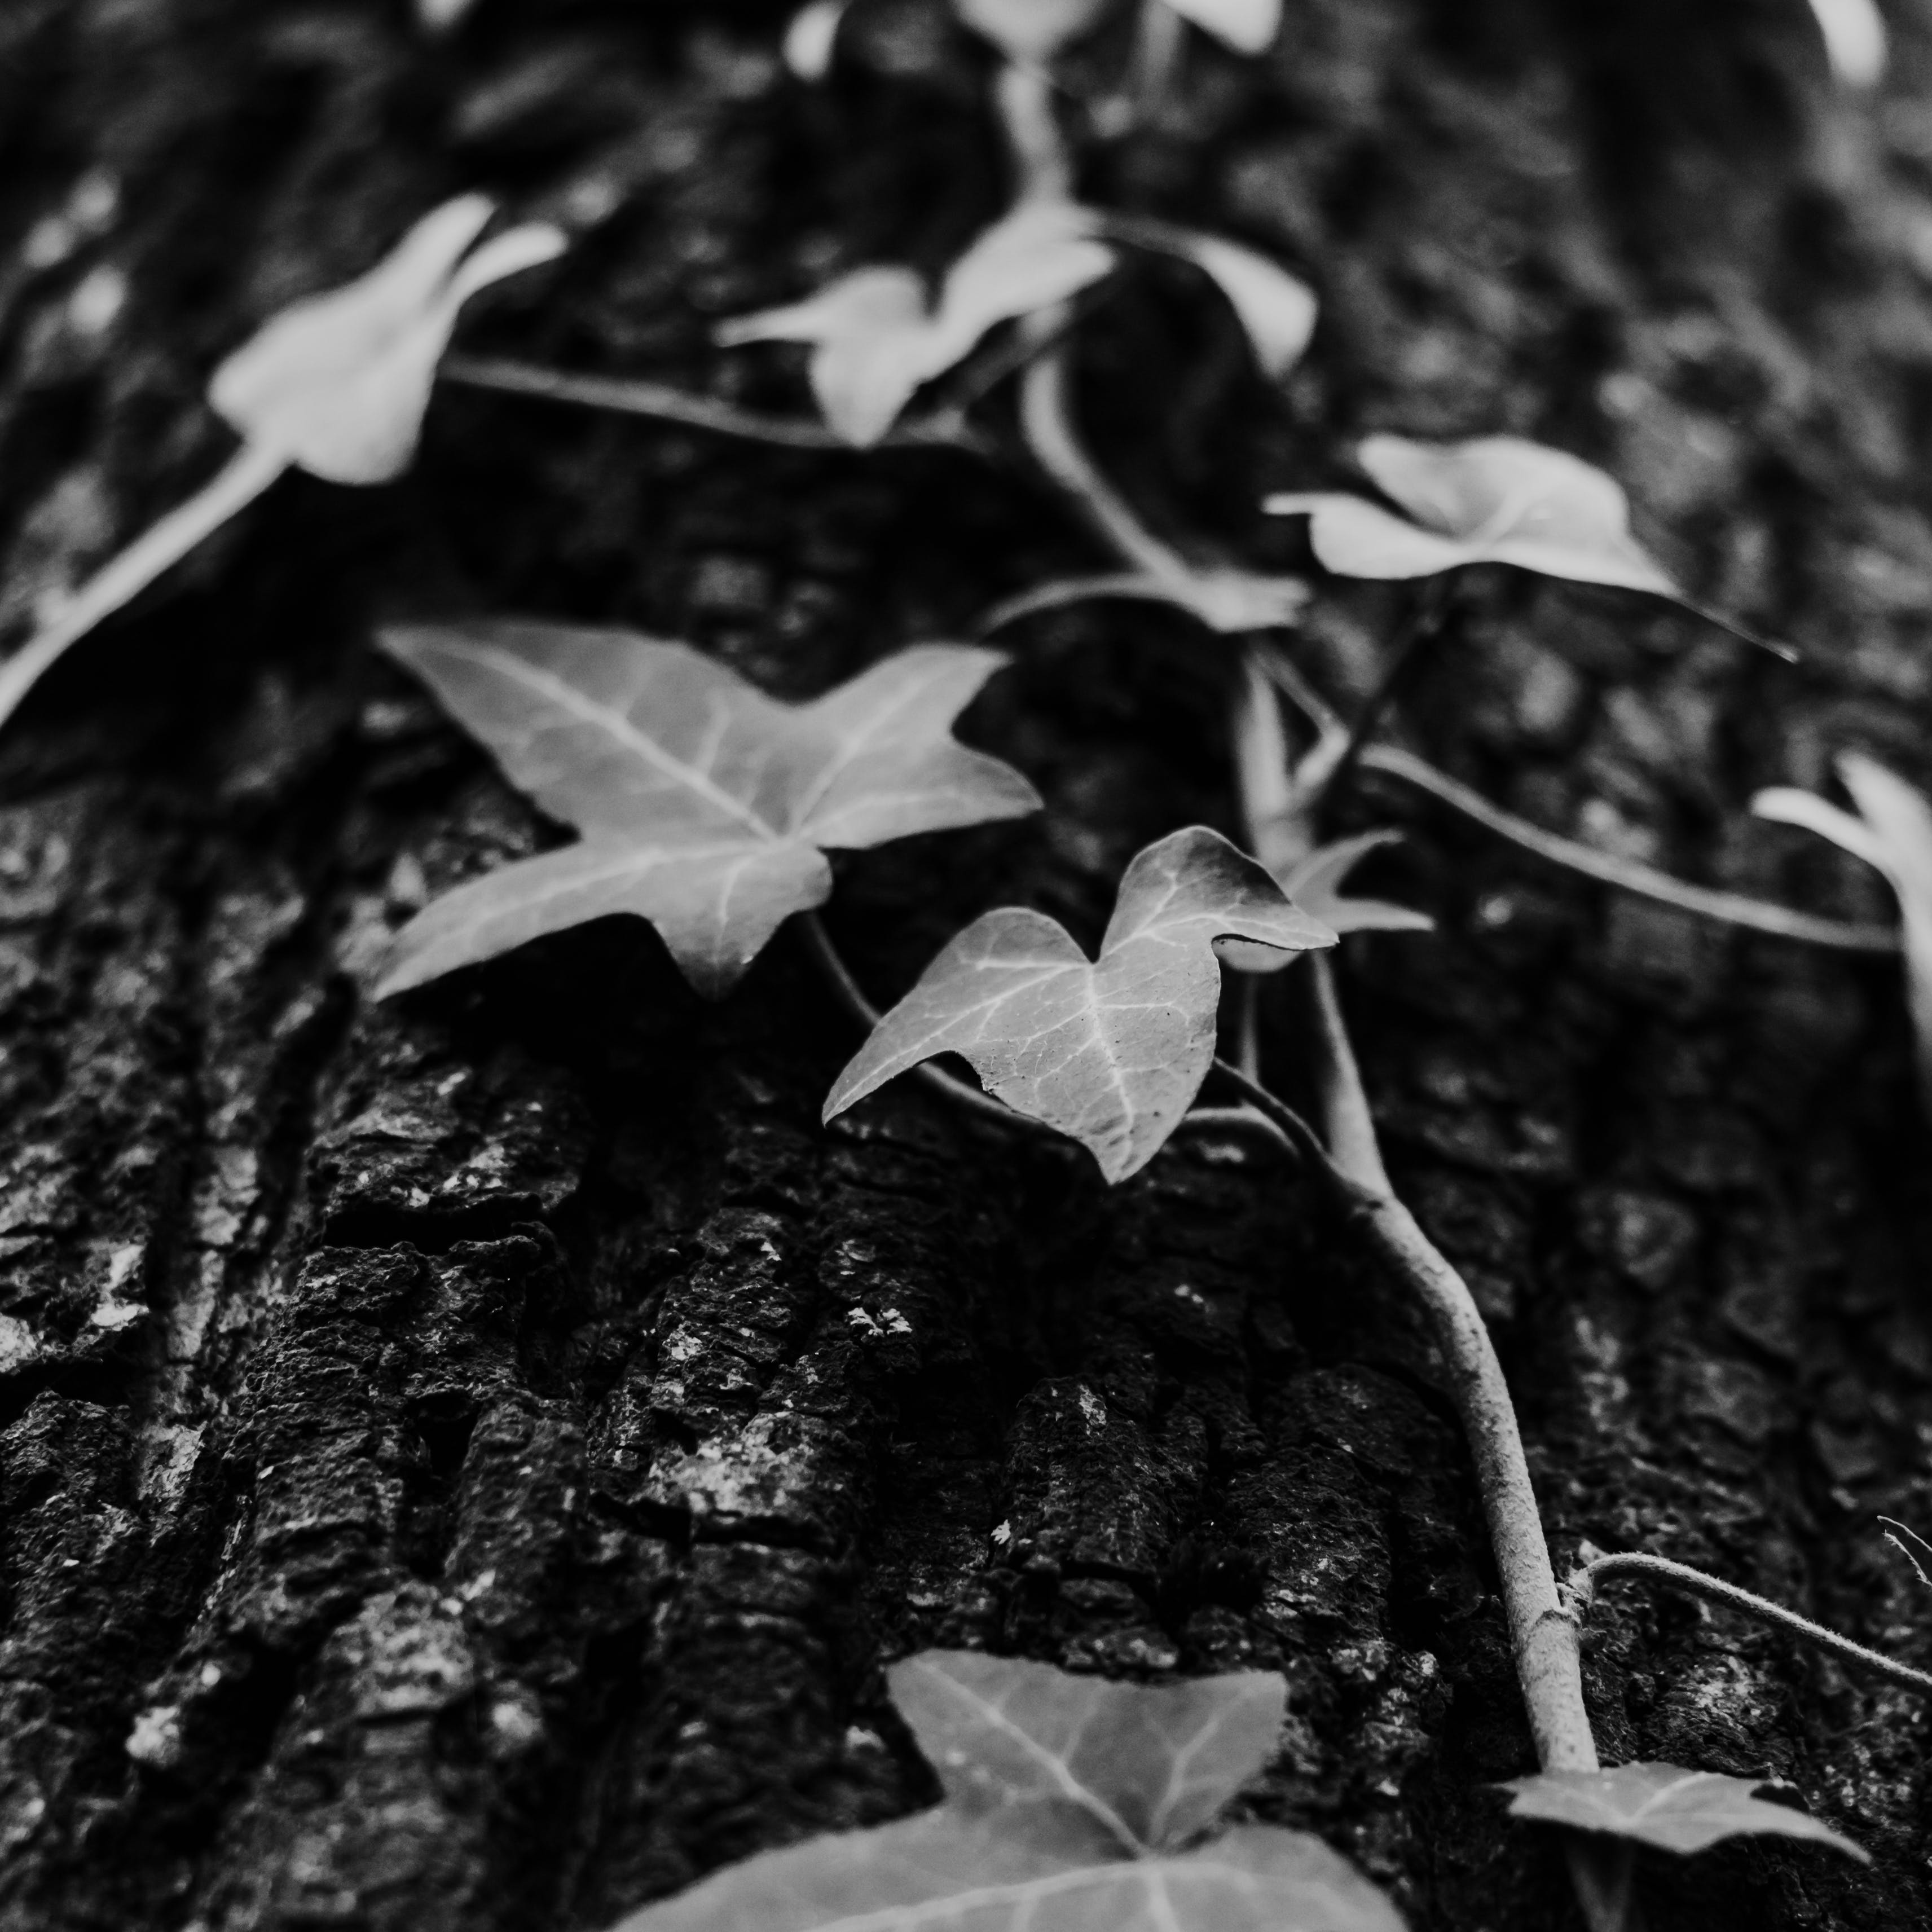 Grayscale Photo of Devil's Ivy Plant